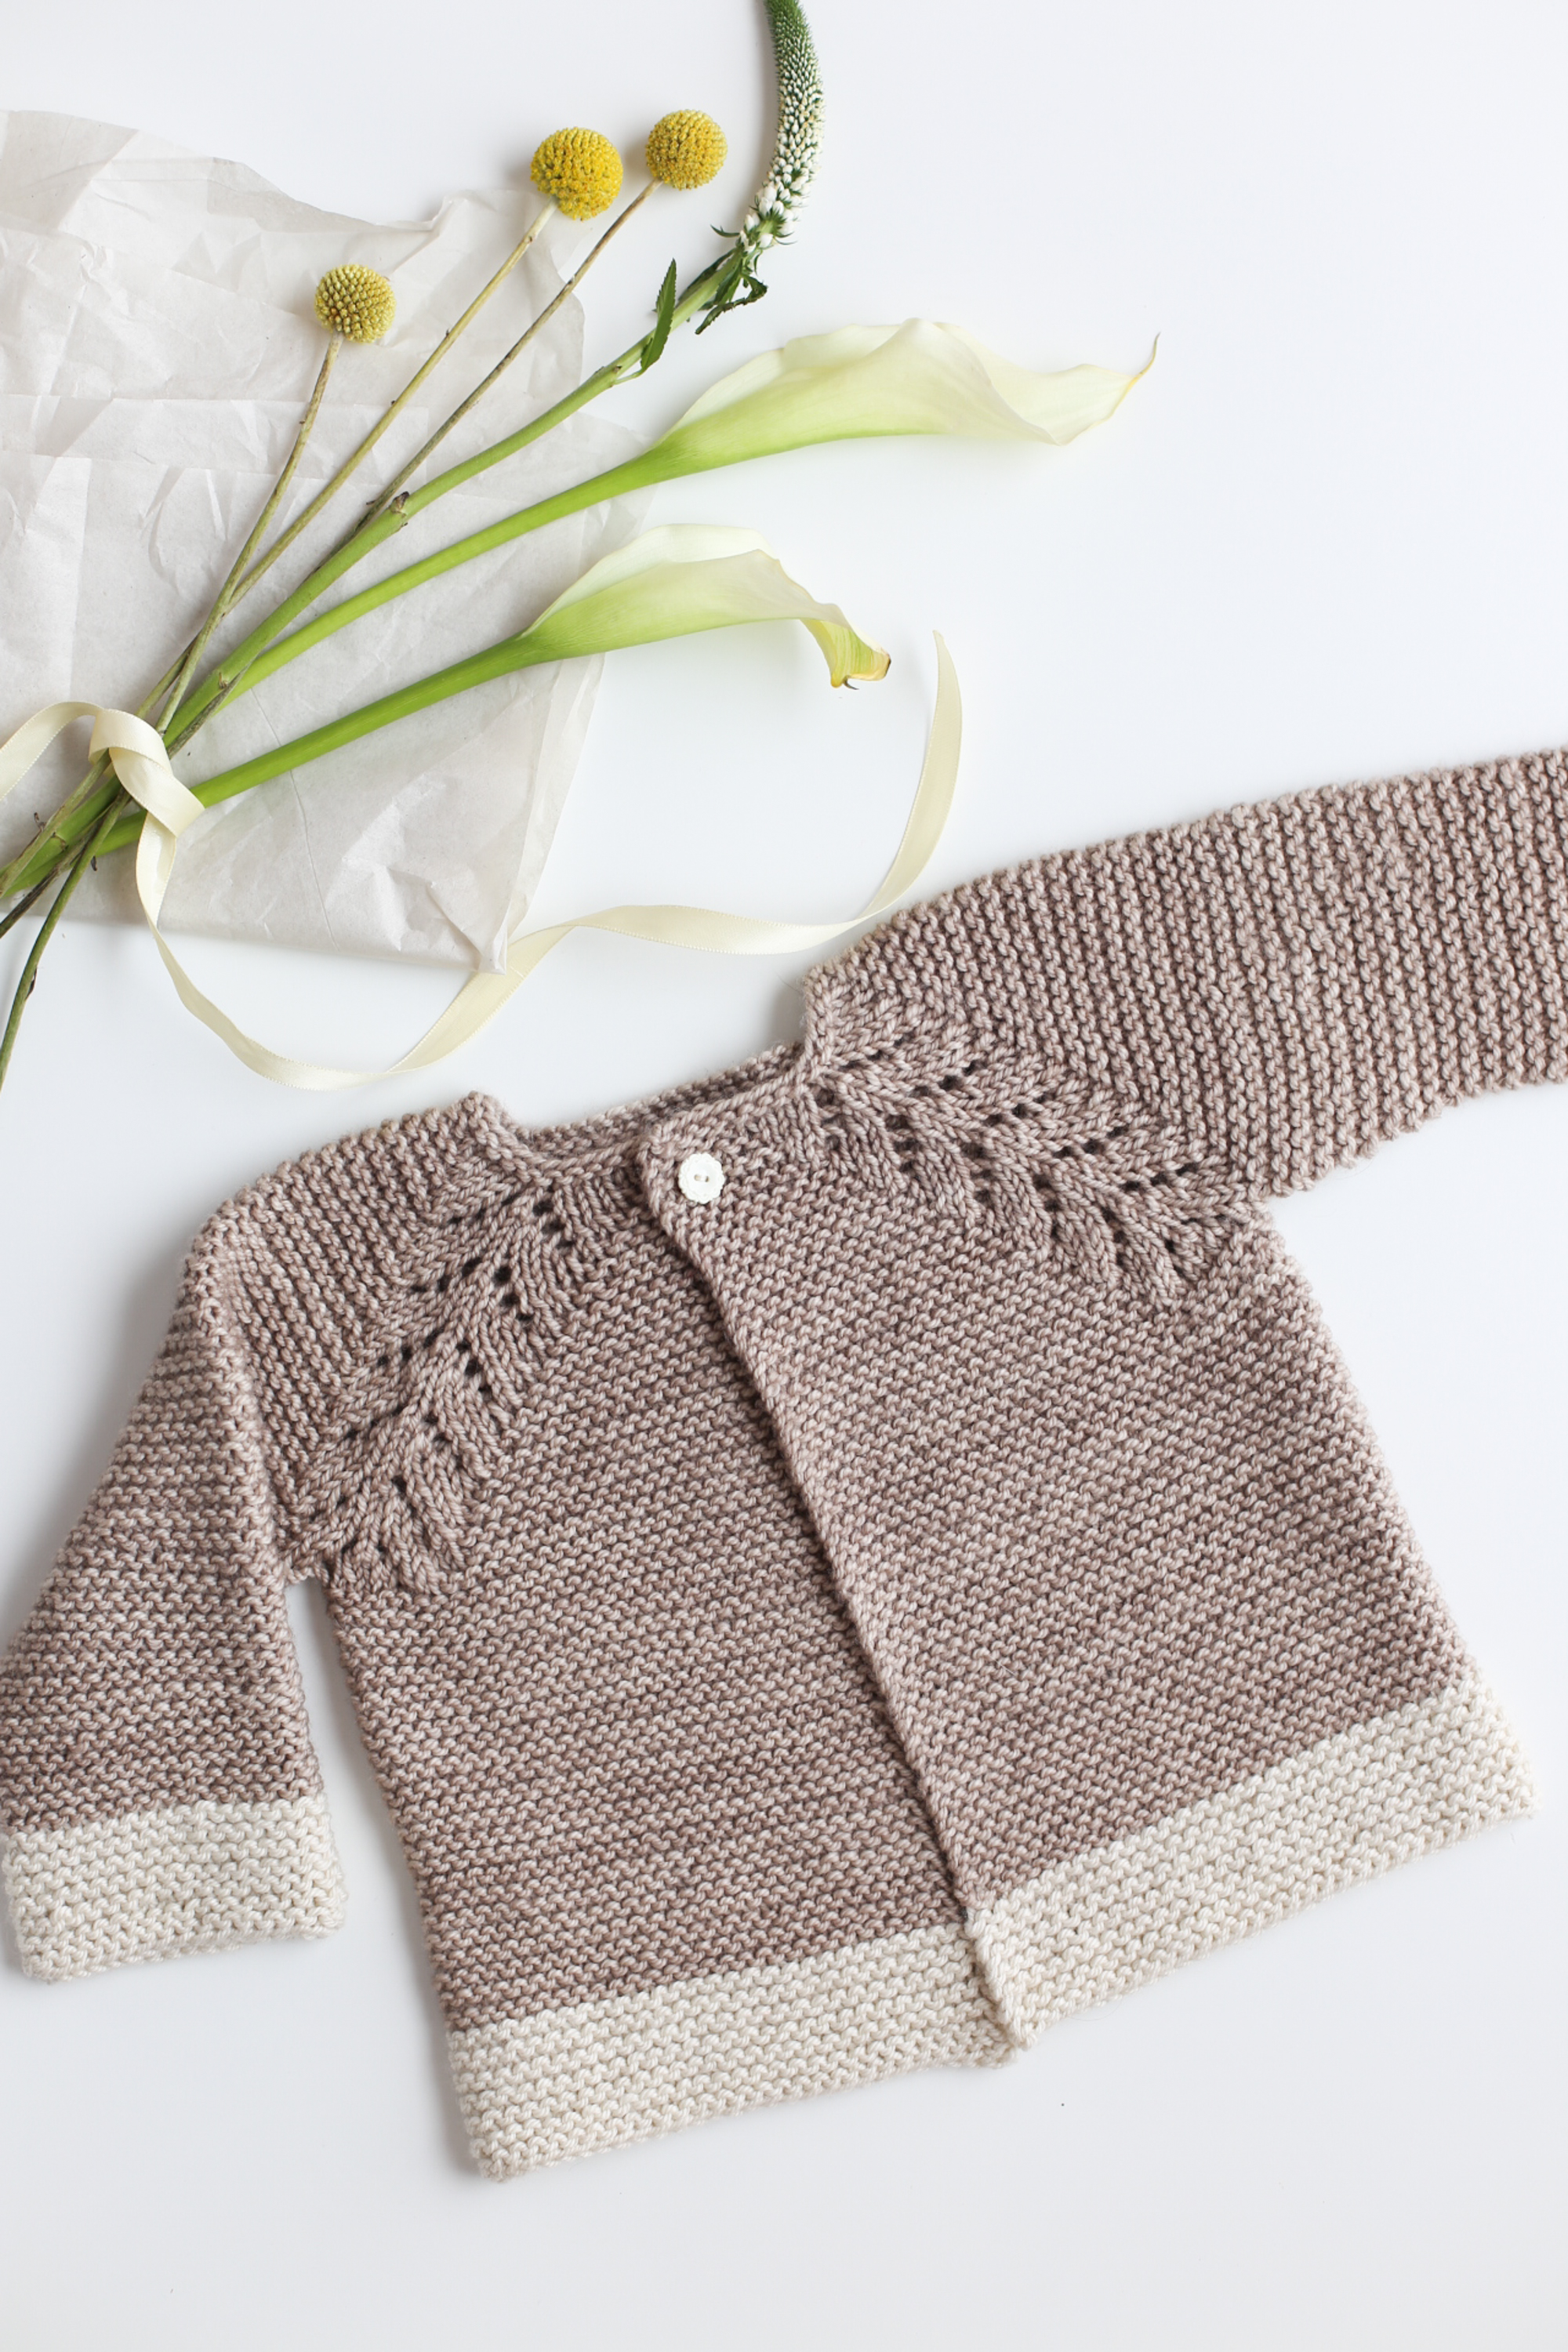 630ef88c3 Lovely Knit Top Down Cardigan Baby Sweater - Flax   Twine